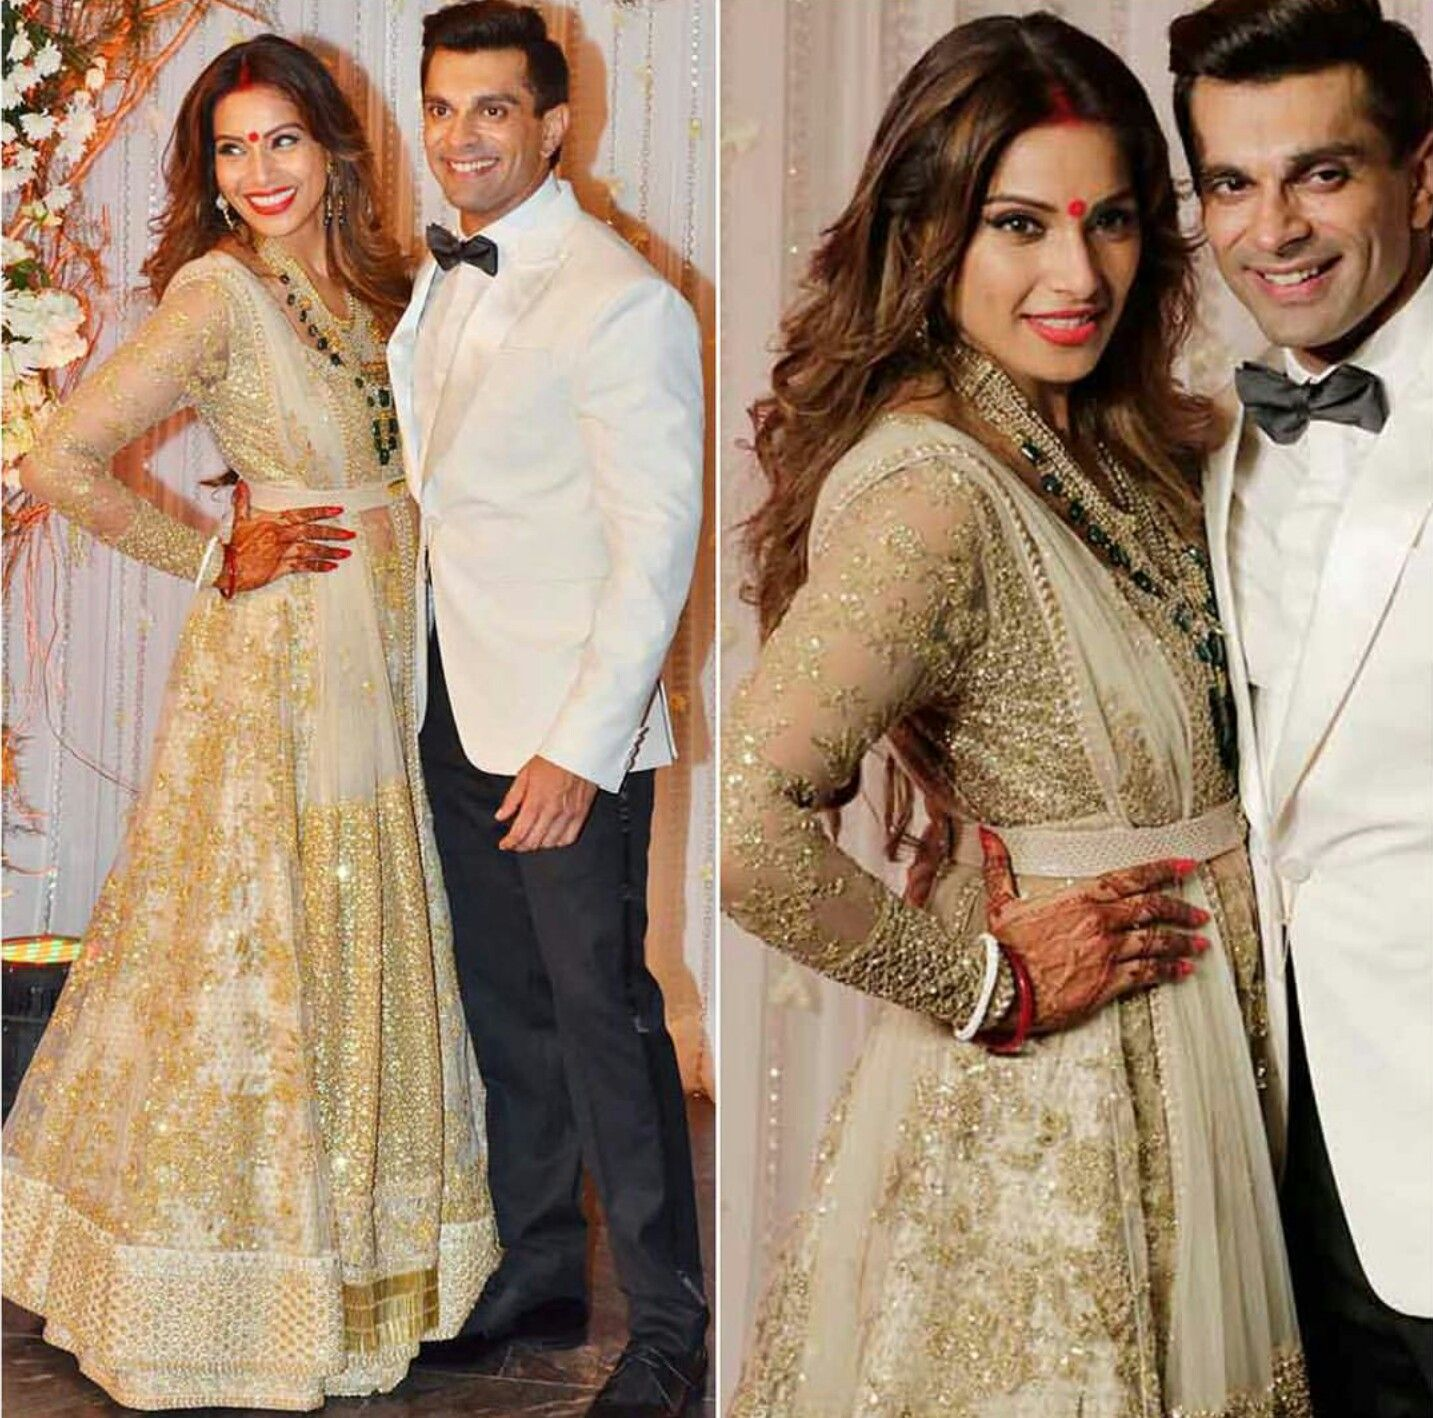 Bipasha Basu wearing off white and golden dress by Sabyasachi at her ...